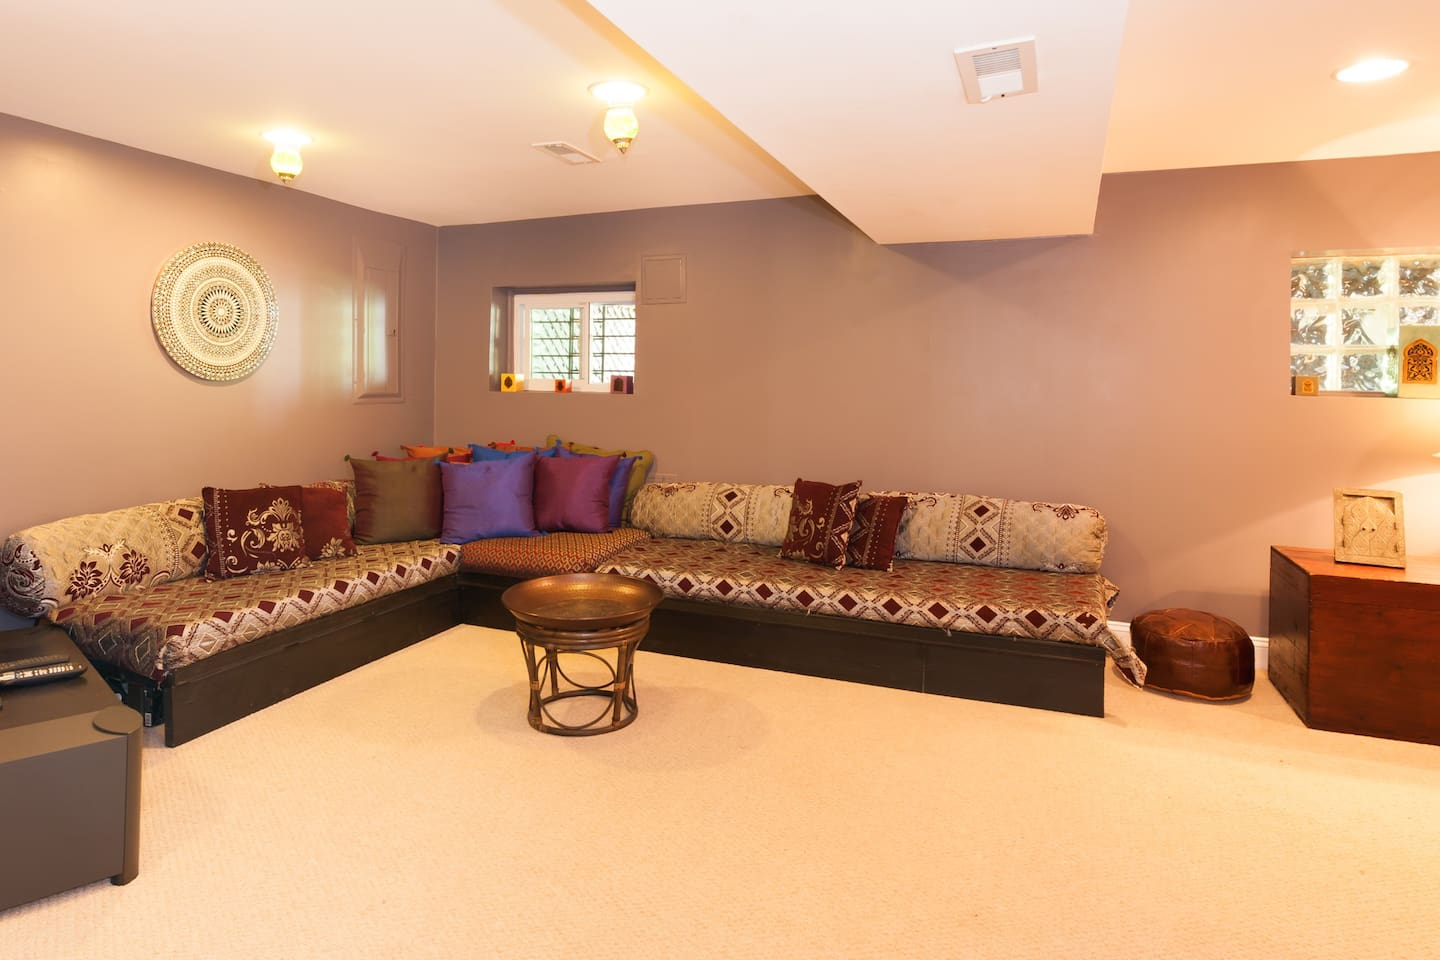 Moroccan style den with 2 couches that can double as beds. Private entry